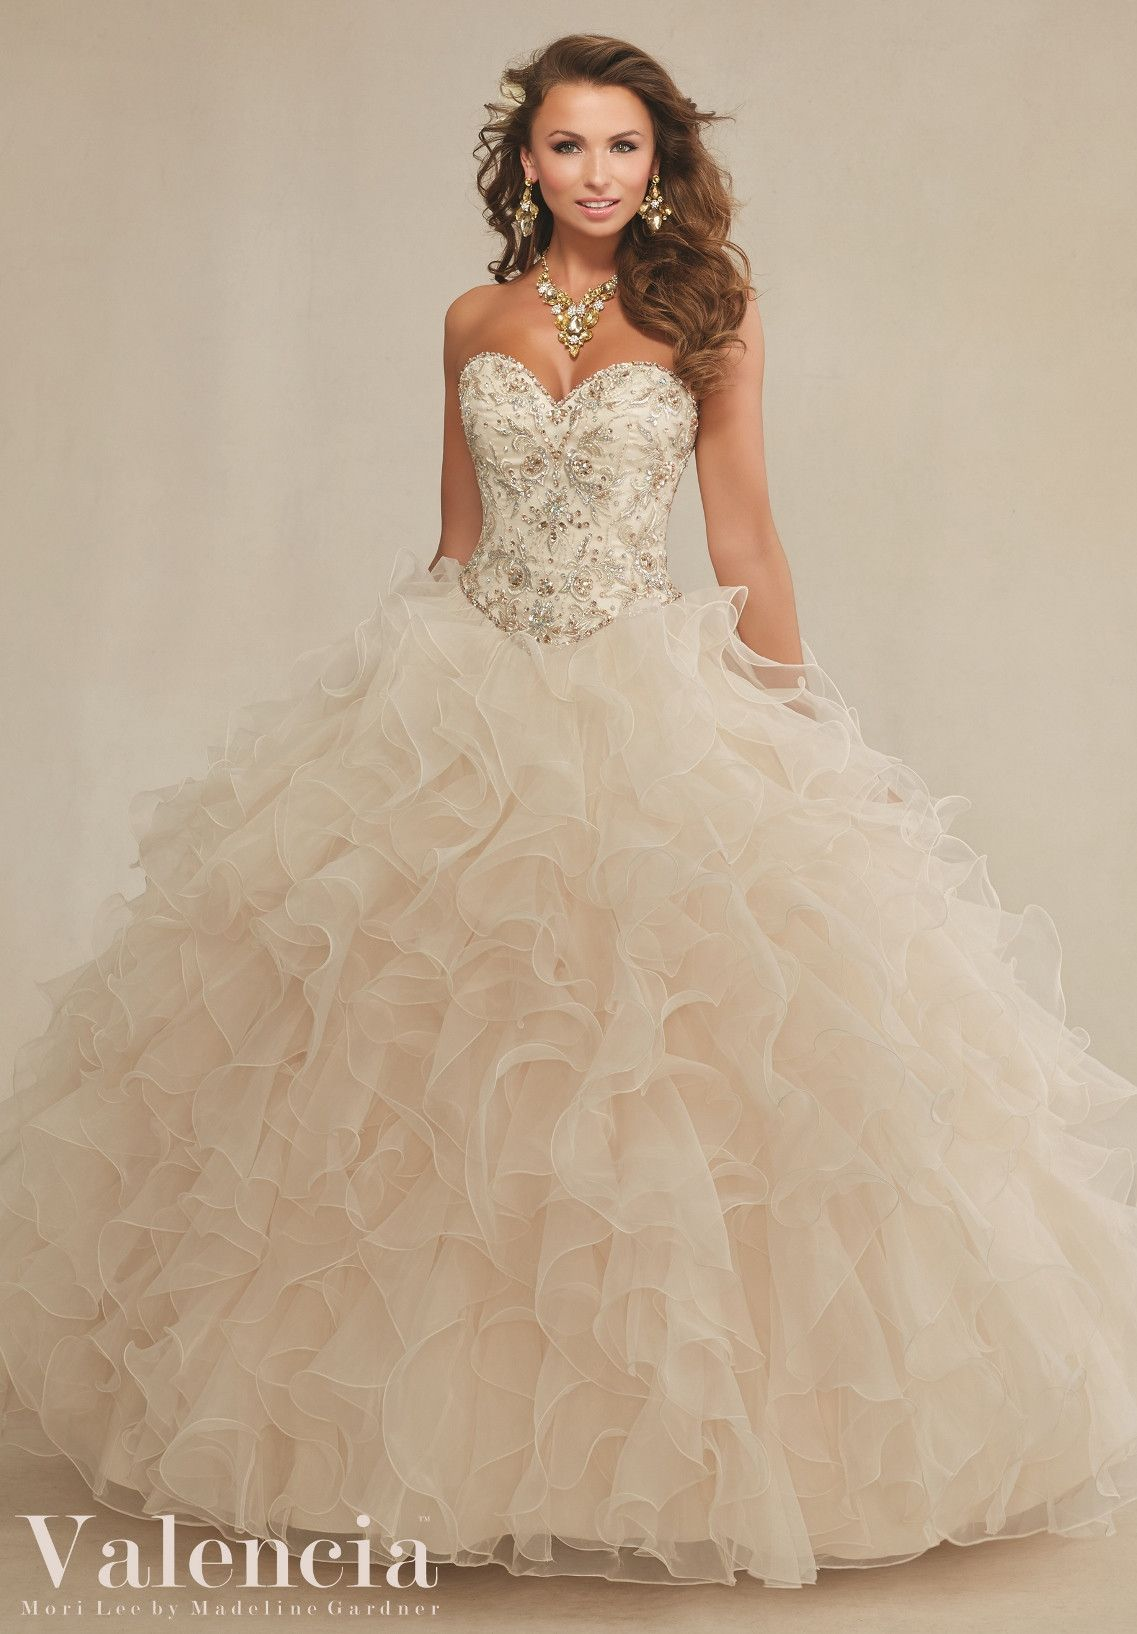 a1287488d1 Mori Lee Valencia Quinceanera Dress Style 89082 is made for girls who want  to look like